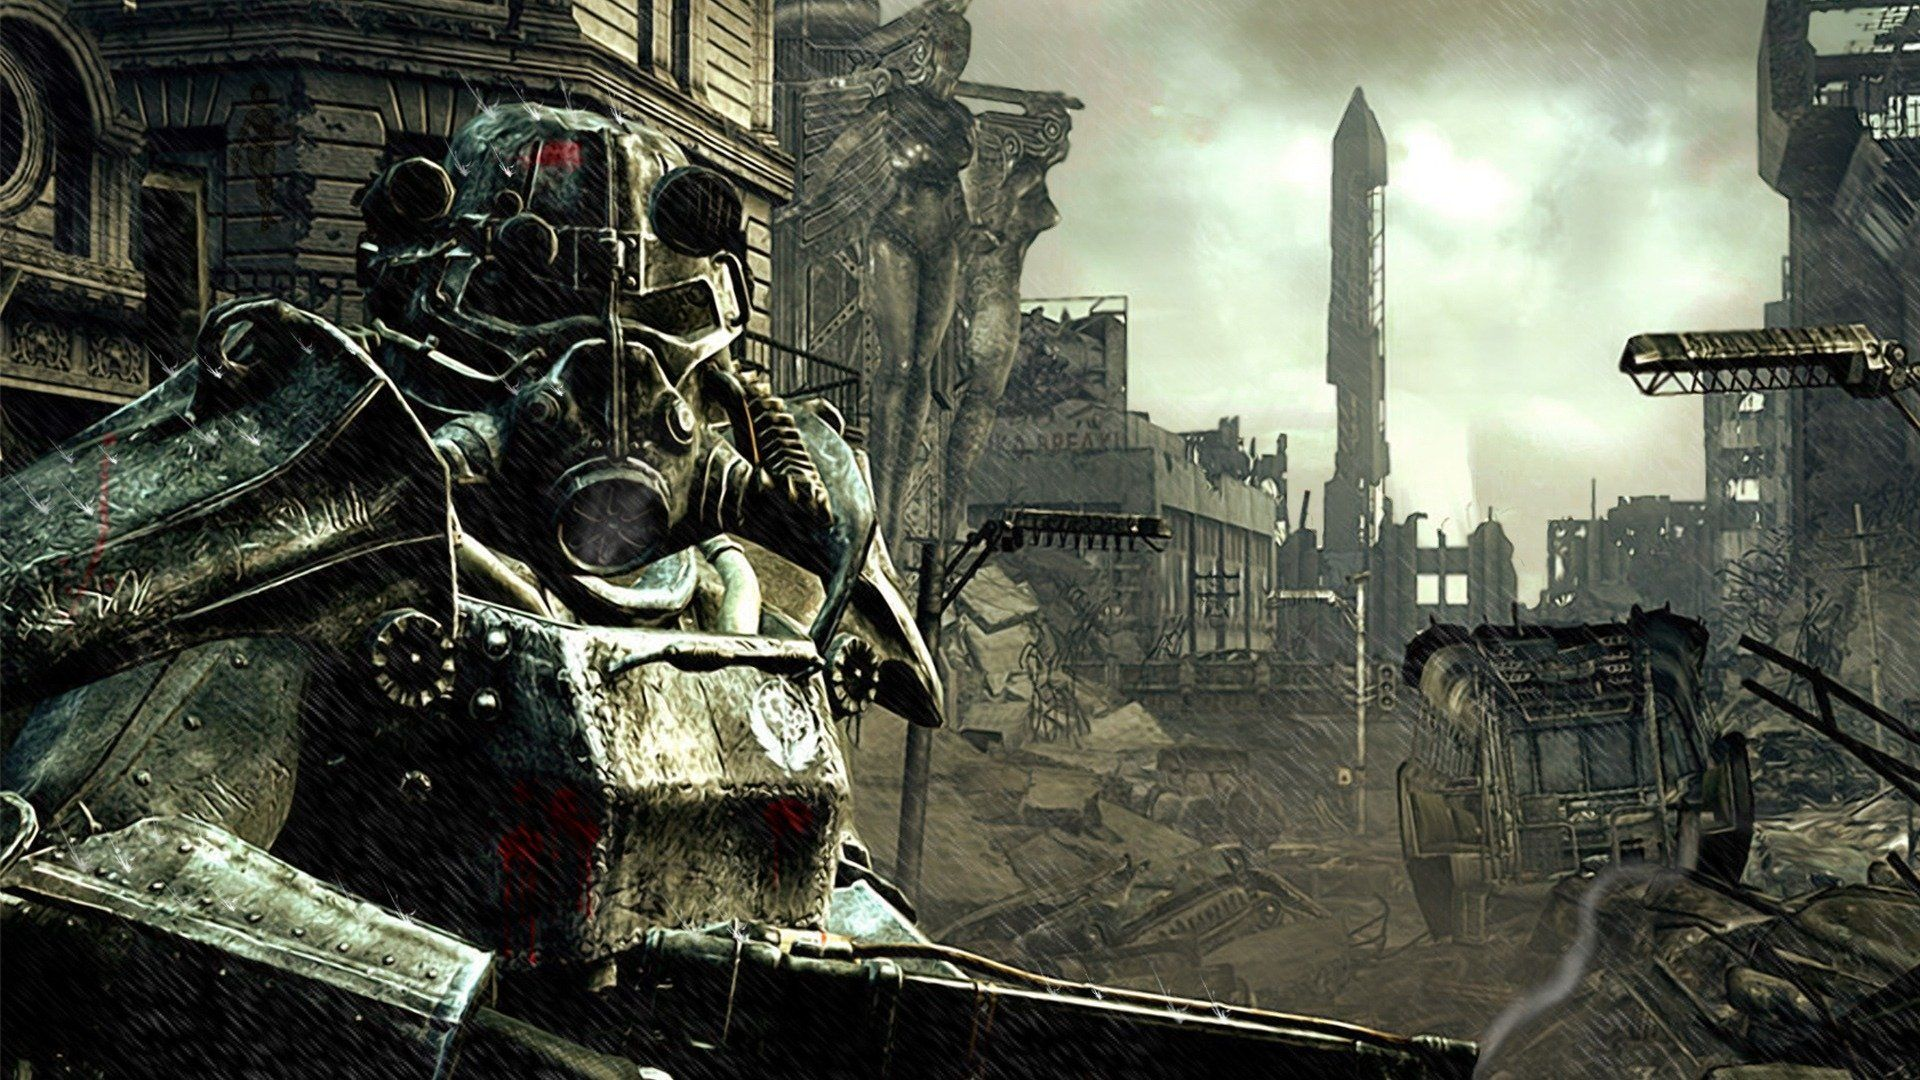 Fallout 3 Was Altered For Japan Fallout Wallpaper Fallout Fallout 3 Wallpaper